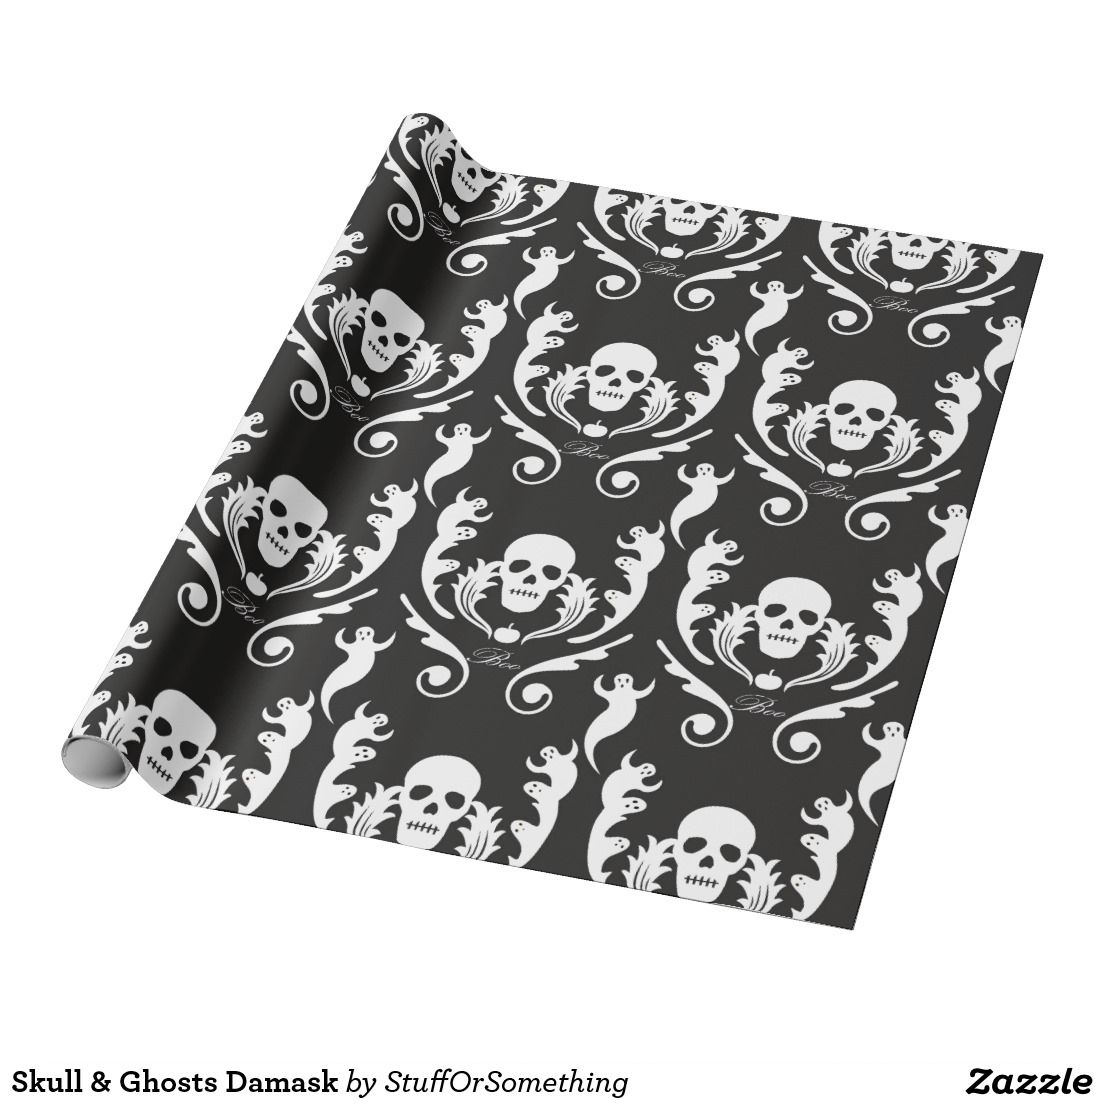 Skull & Ghosts Damask Wrapping Paper